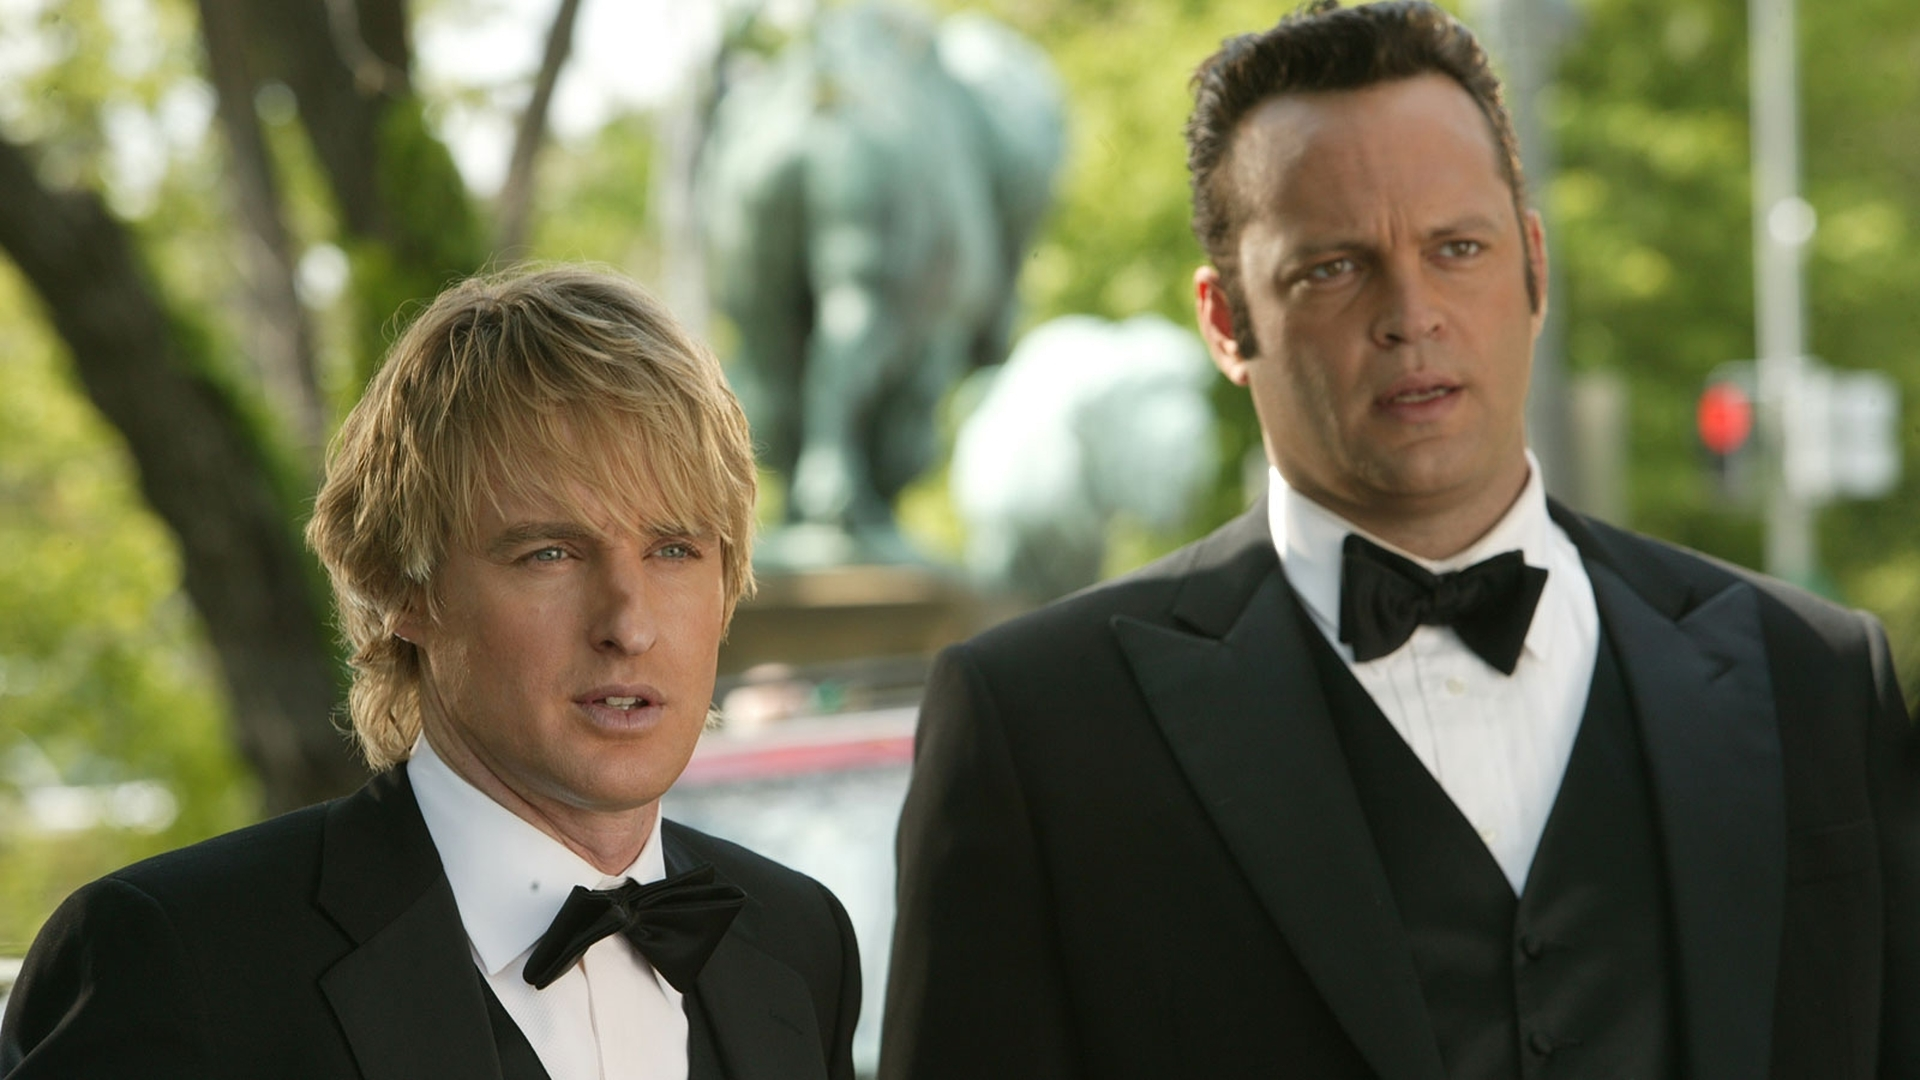 Owen Wilson and Vince Vaughn in The Wedding Crashers.